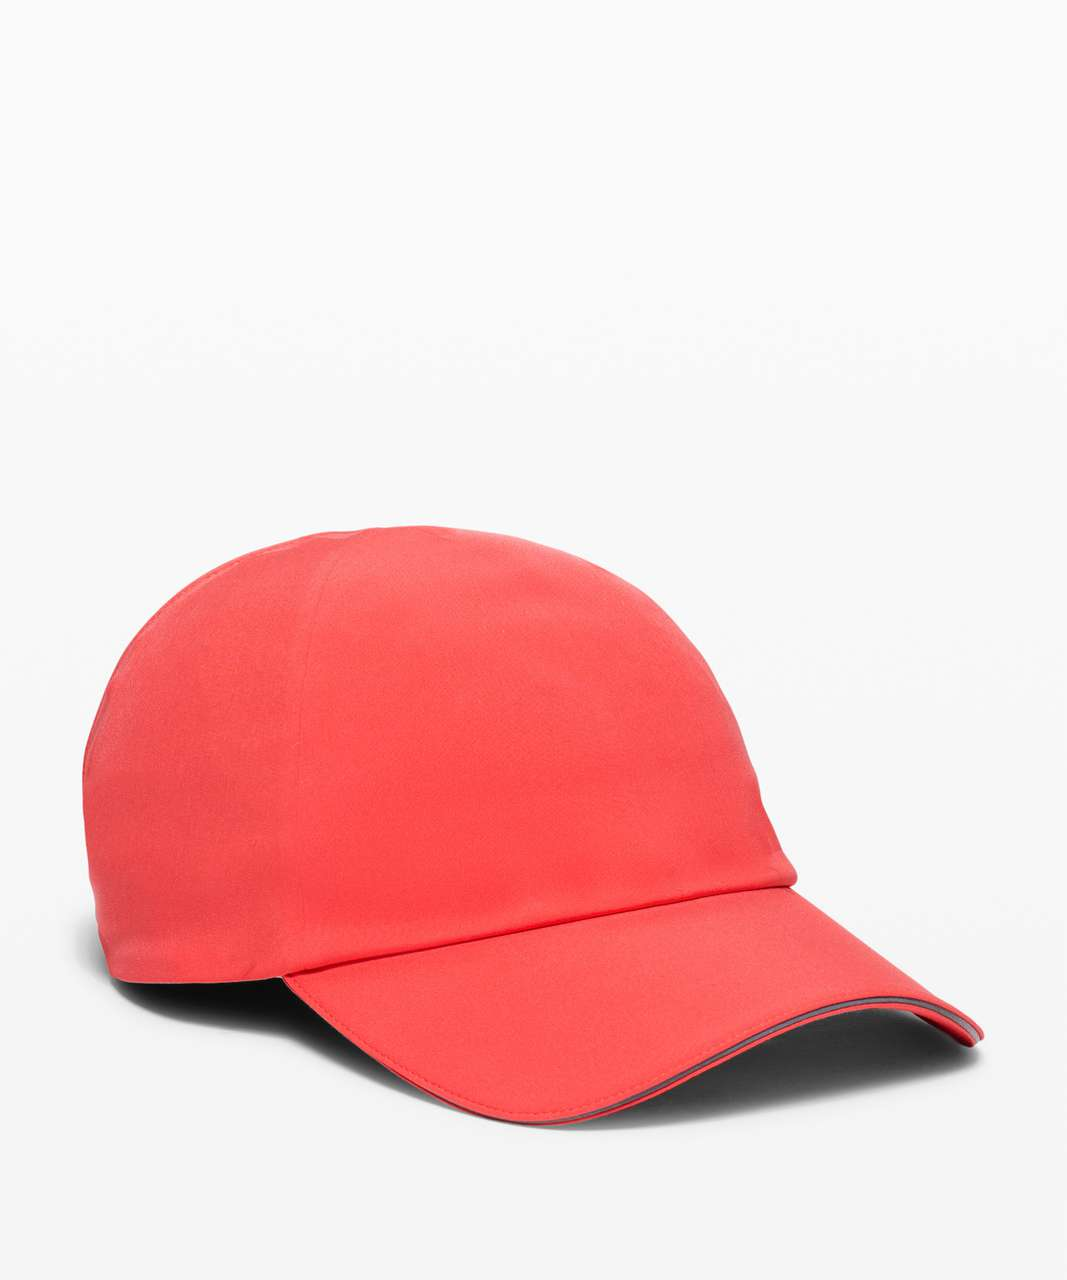 Lululemon Fast and Free Womens Run Hat *Pony - Pink Punch